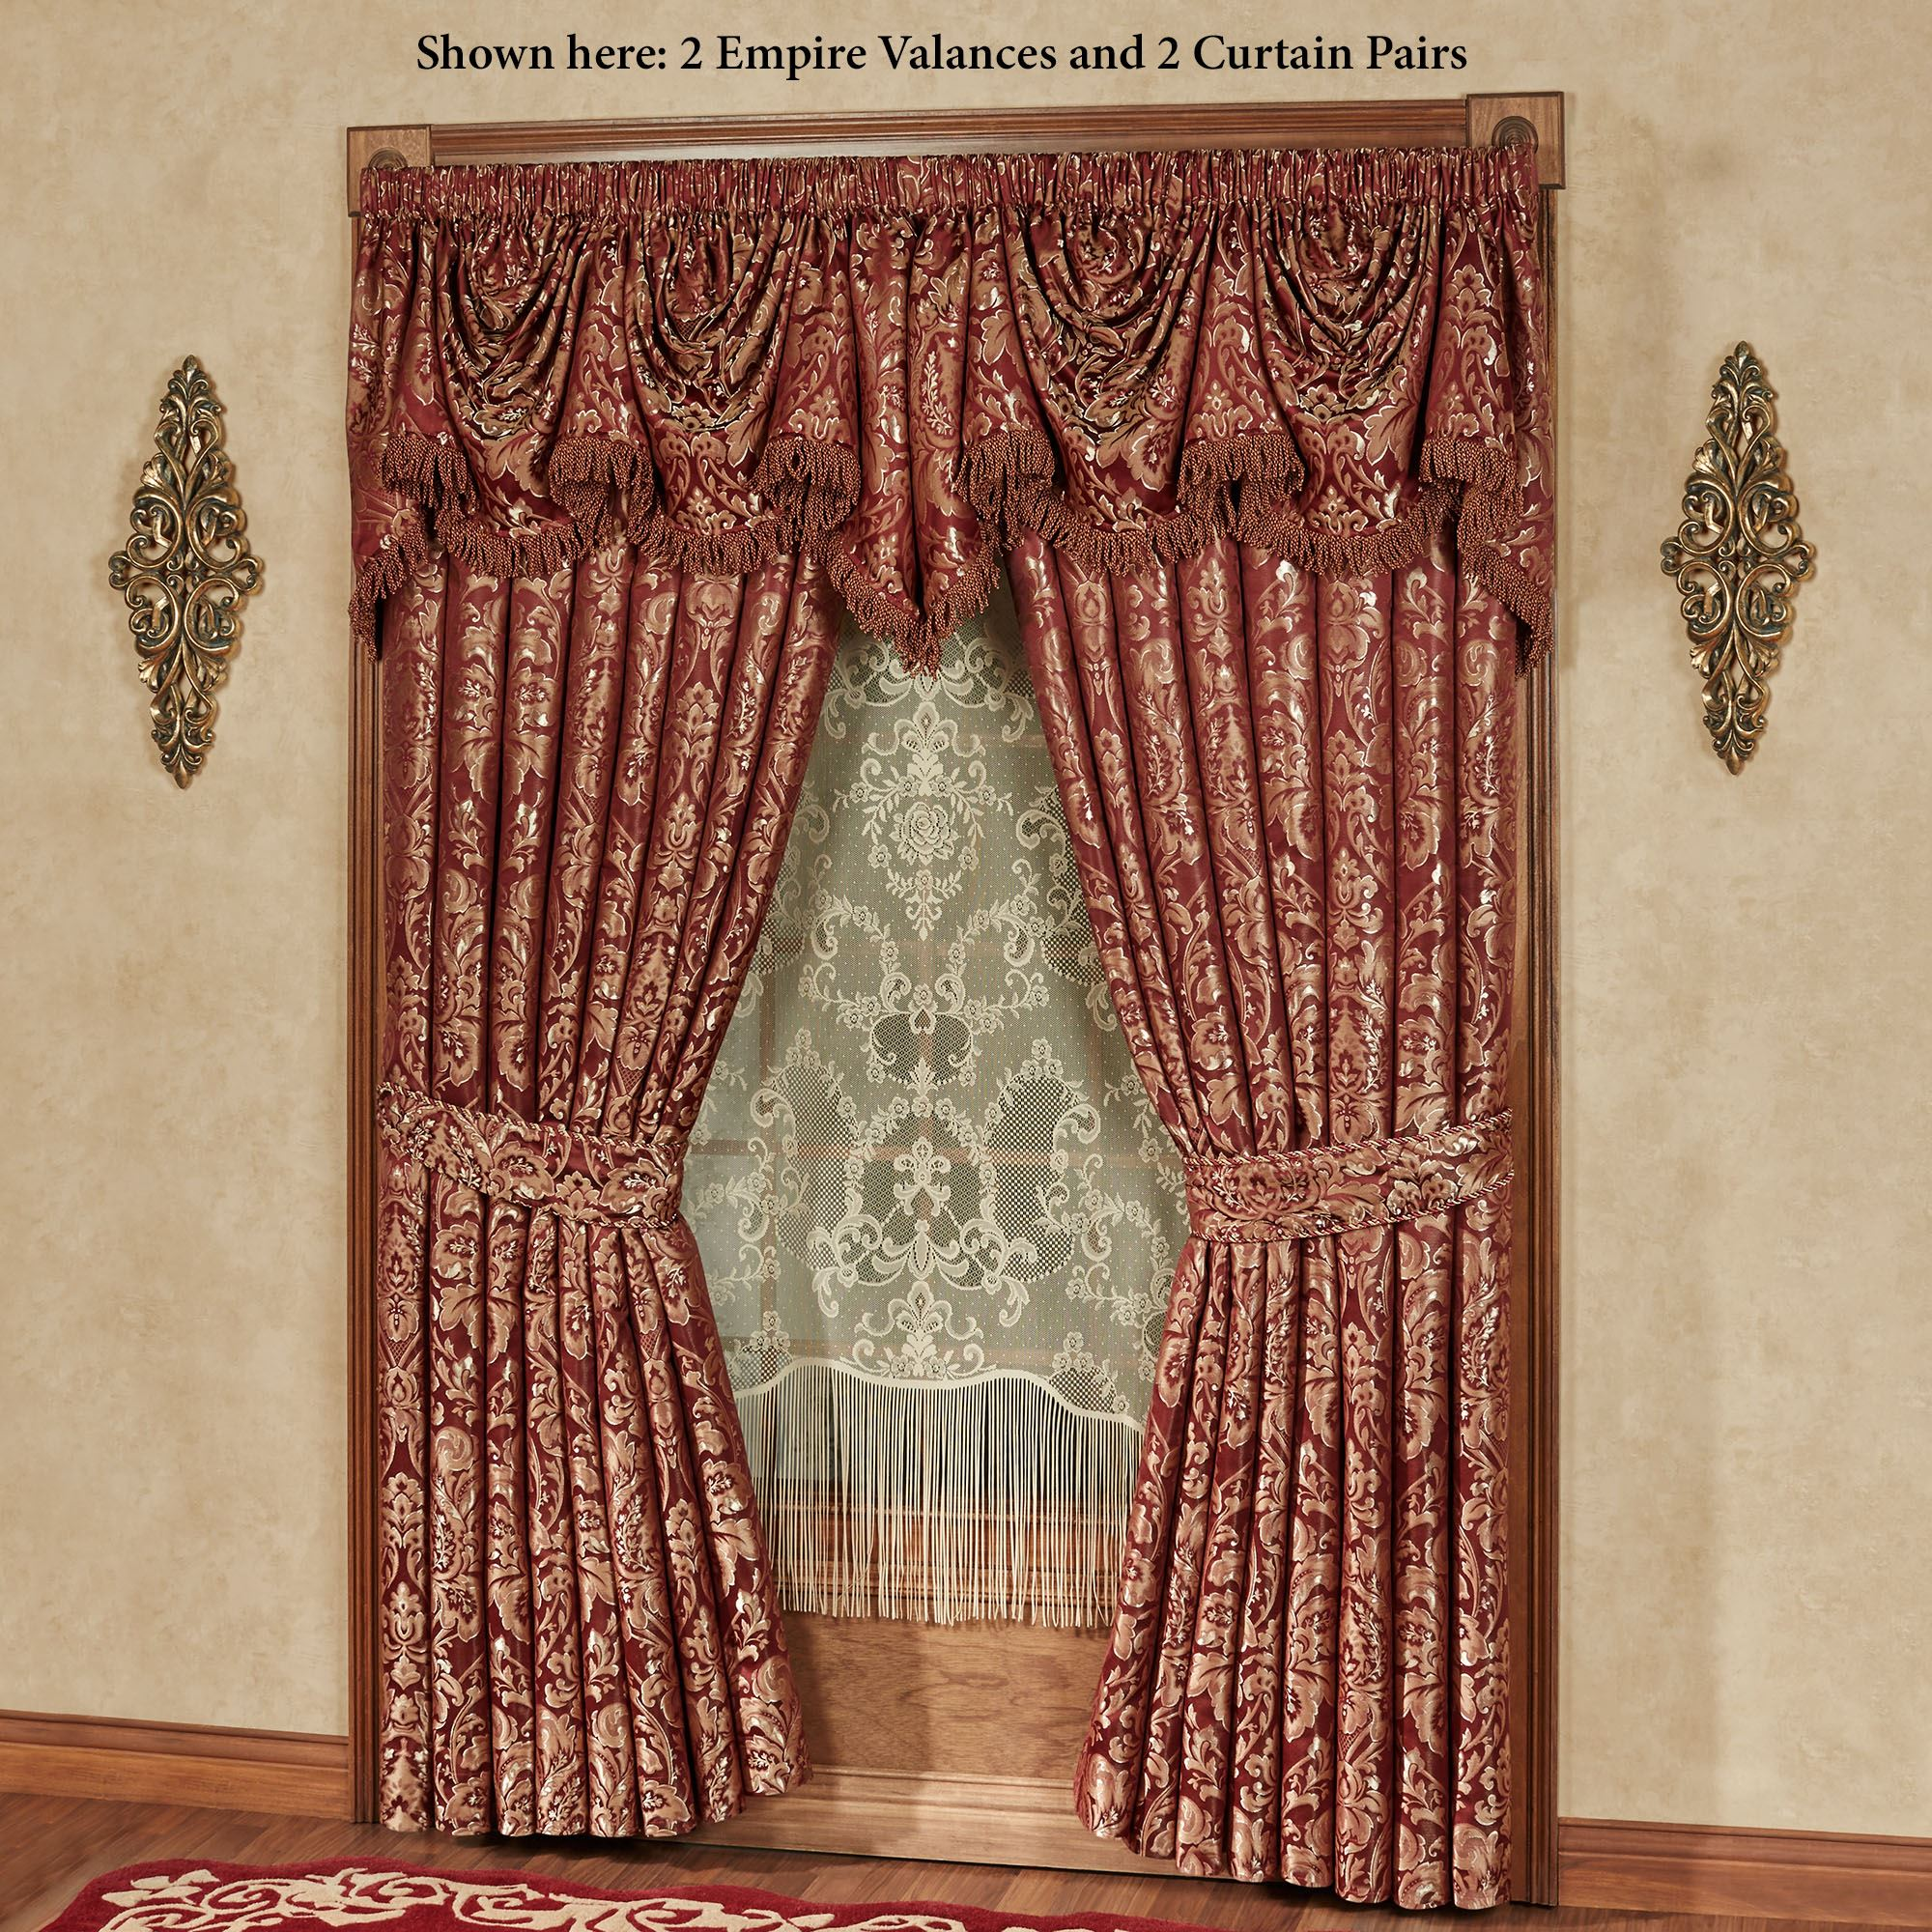 Lace Curtains And How To Clean Them Properly Touch to zoom